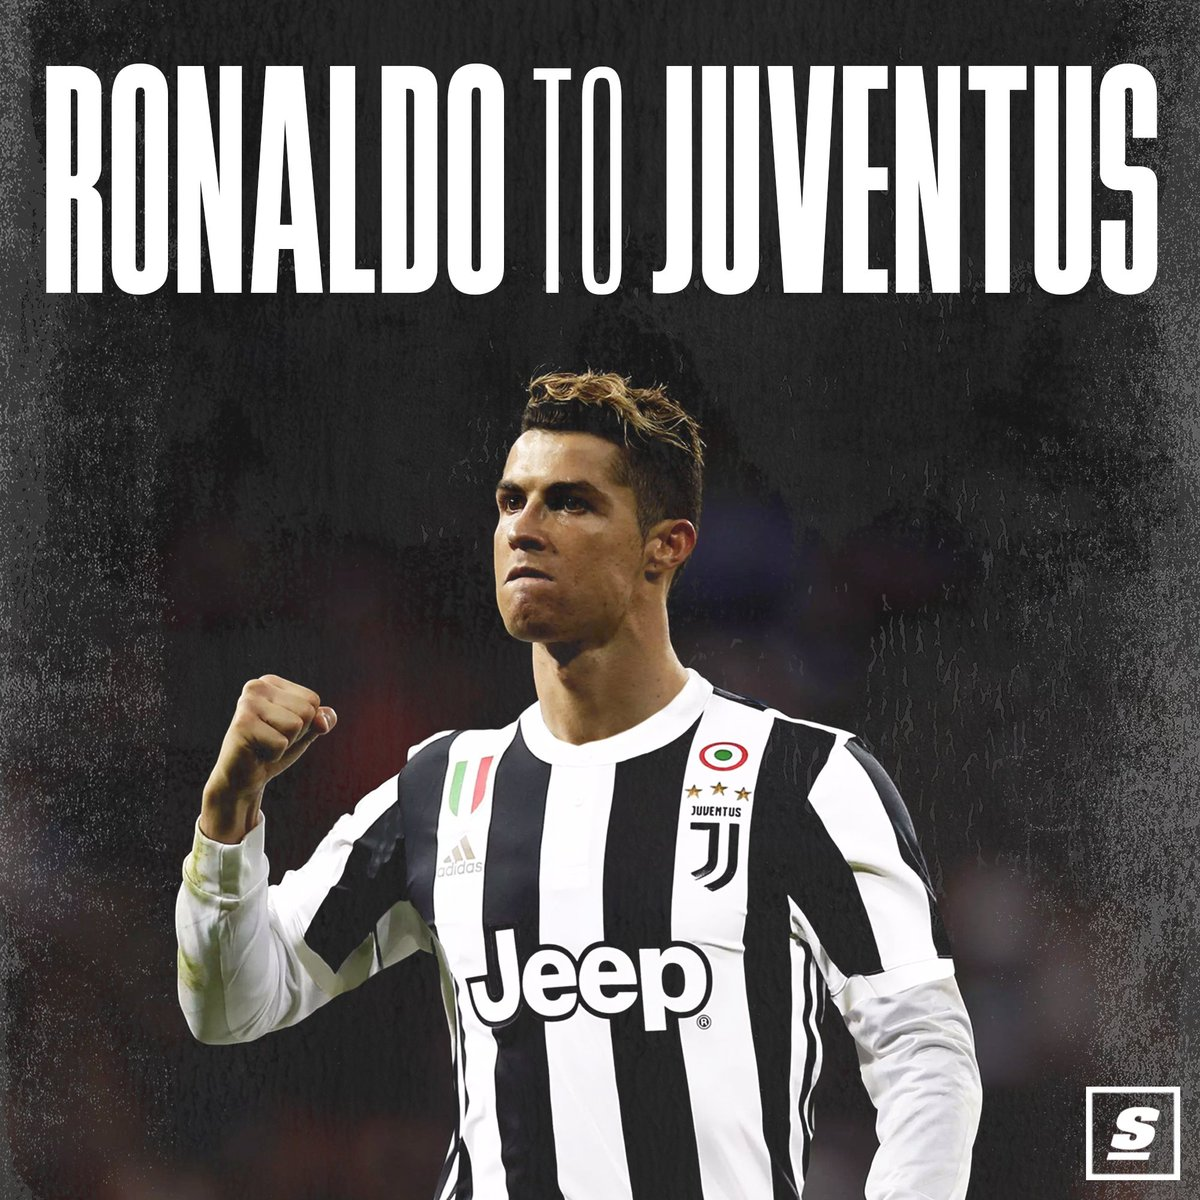 BREAKING: Cristiano Ronaldo reportedly agrees to terms over 4-year contract with Juventus. https://t.co/7nMbQqyEI0